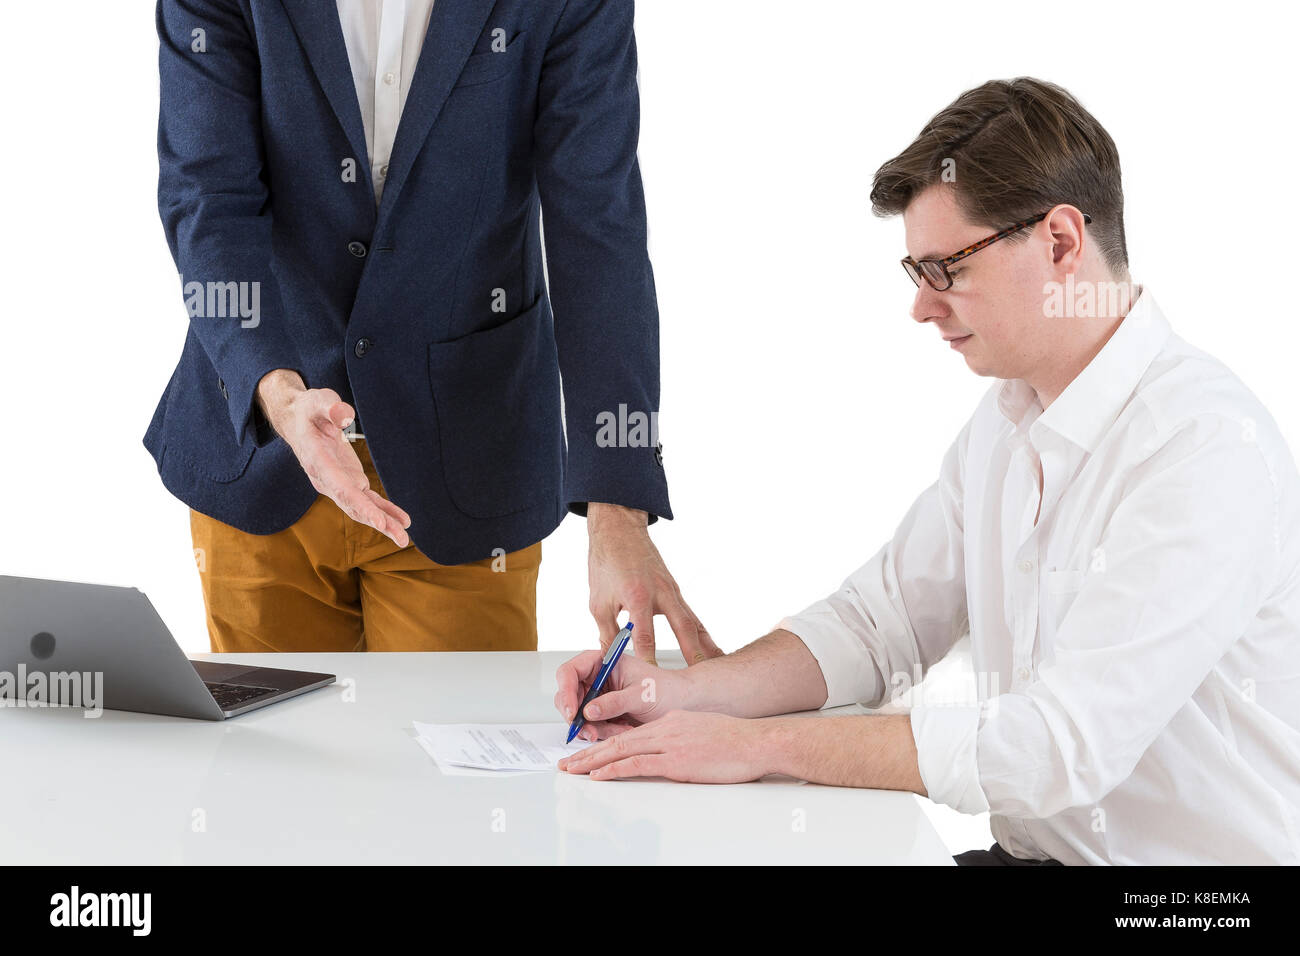 Two young businessmen signing contracts at office desk - Stock Image